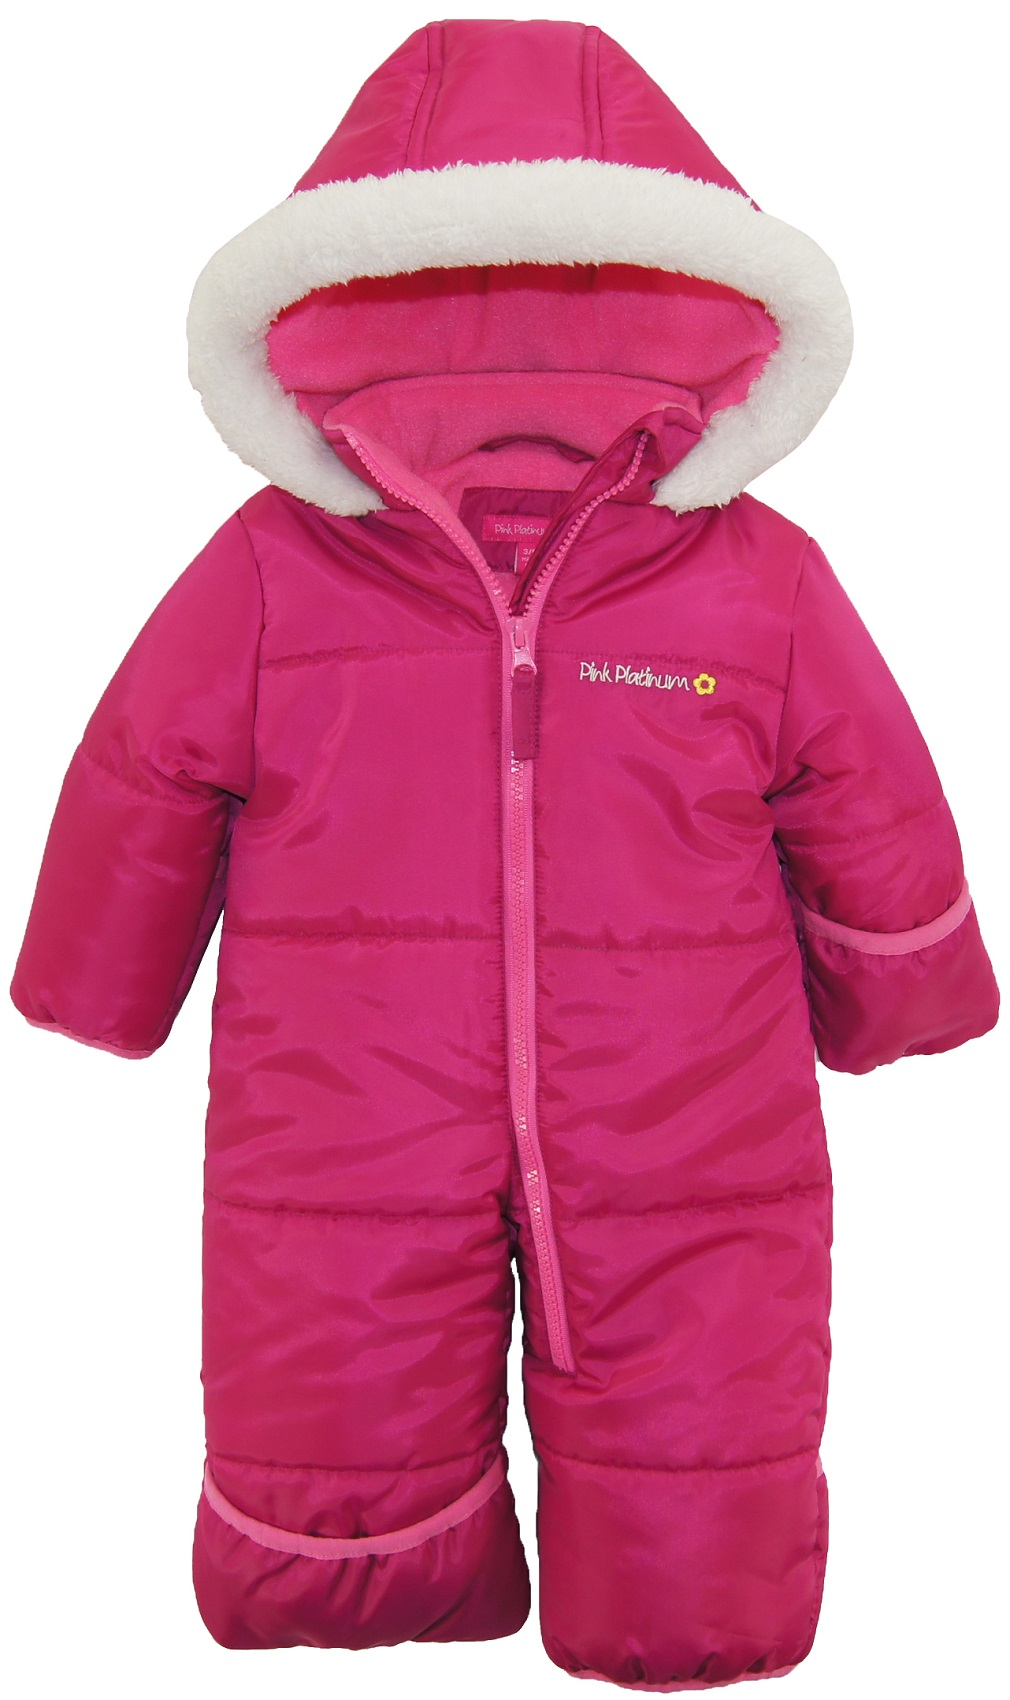 Pink Platinum Baby Girls One Piece Snowsuit